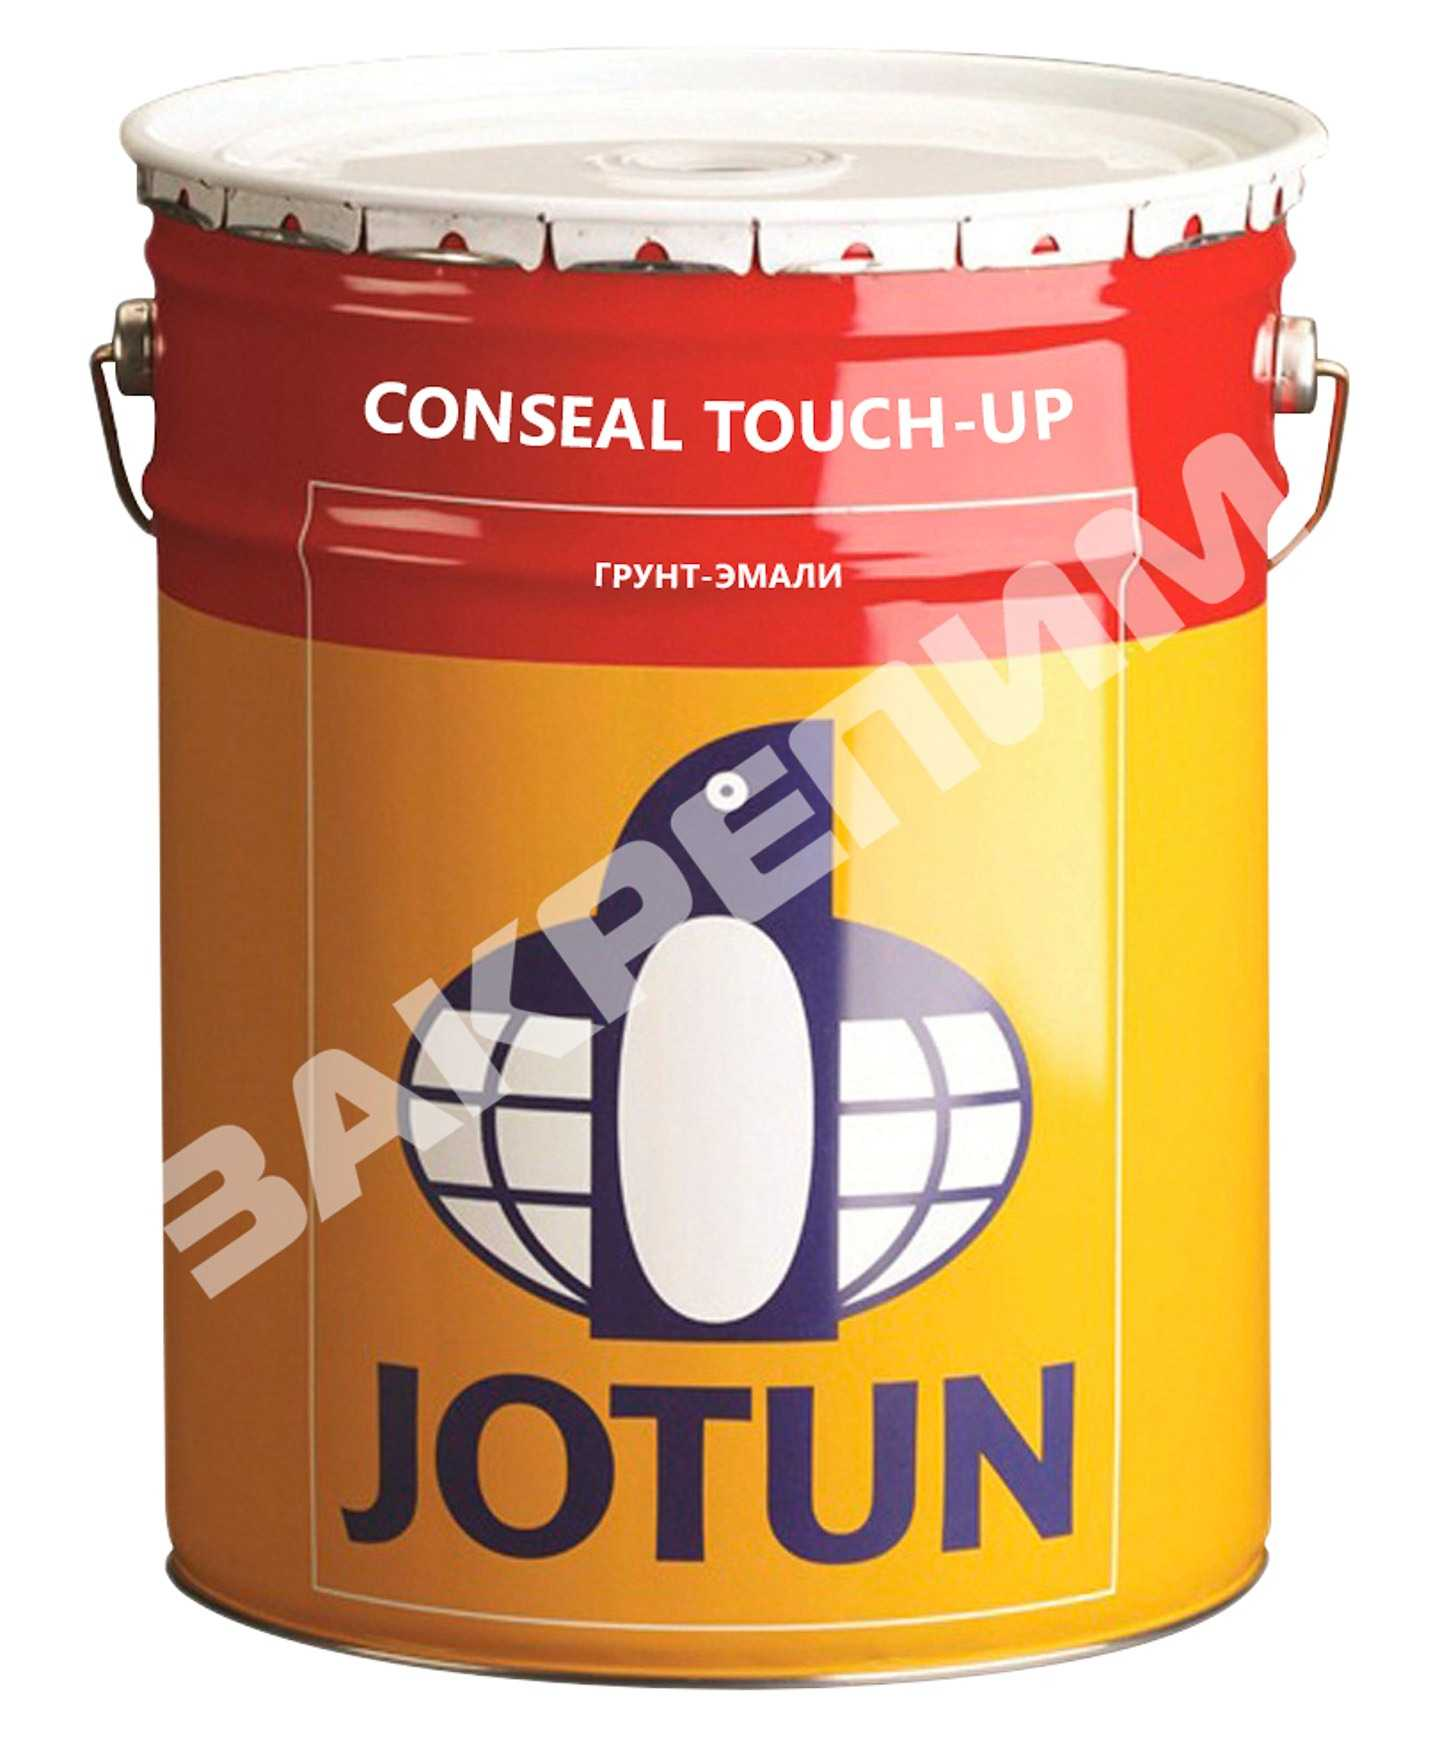 Conseal-Touch-Up